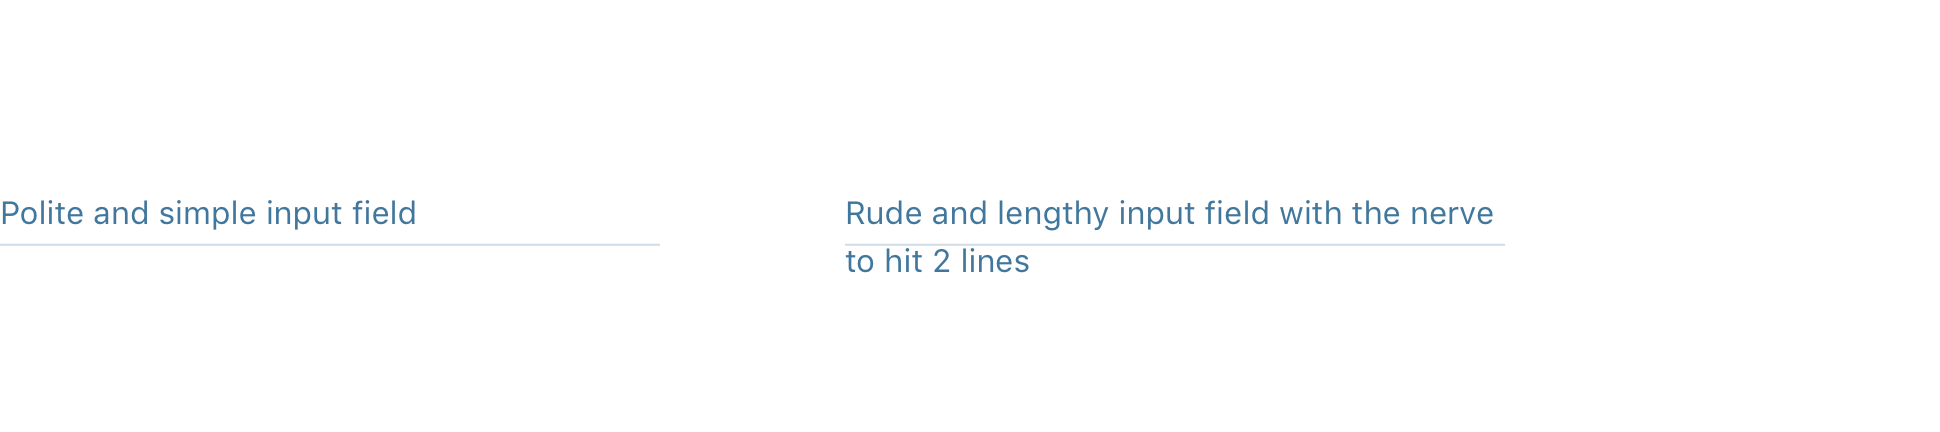 """Two text areas side by side. One reads """"Polite and simple input field"""" and the other reads """"Rude and lengthy input field with the nerve to hit 2 lines."""""""